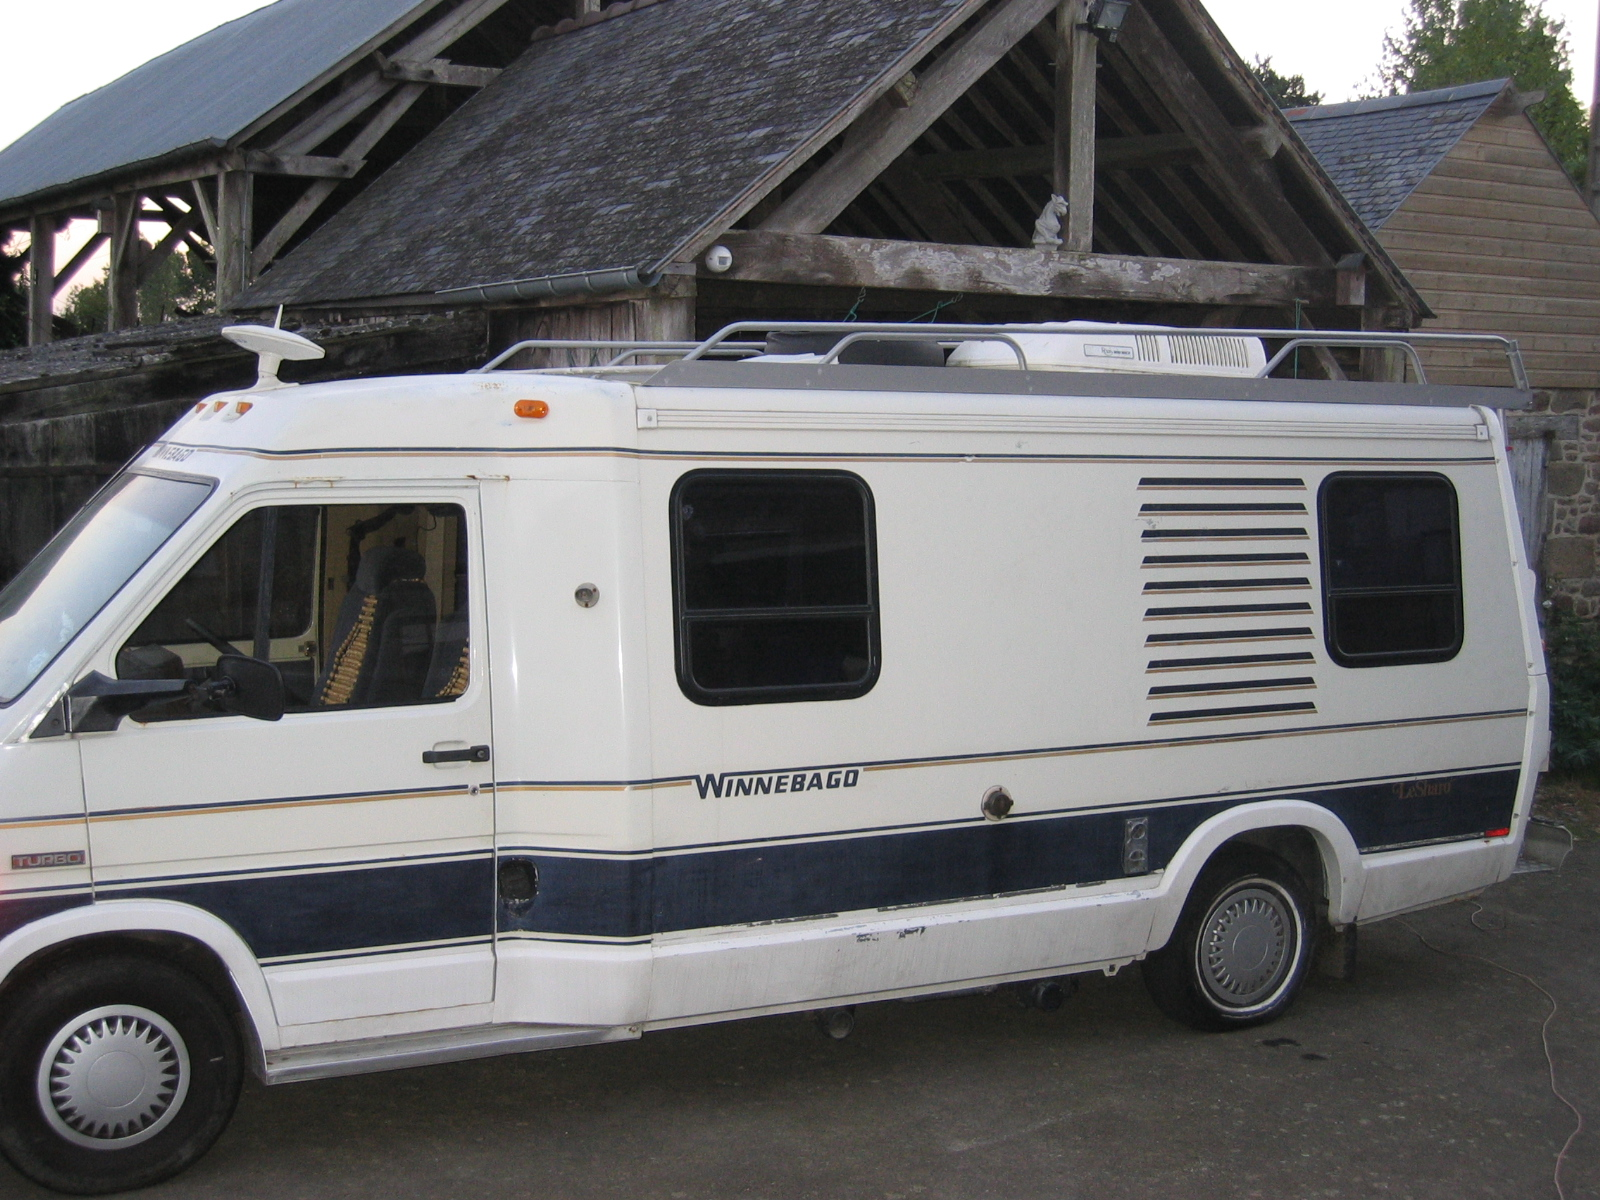 Wiring Diagram For 1987 Winnebago Lesharo Ford Electric Chieftain